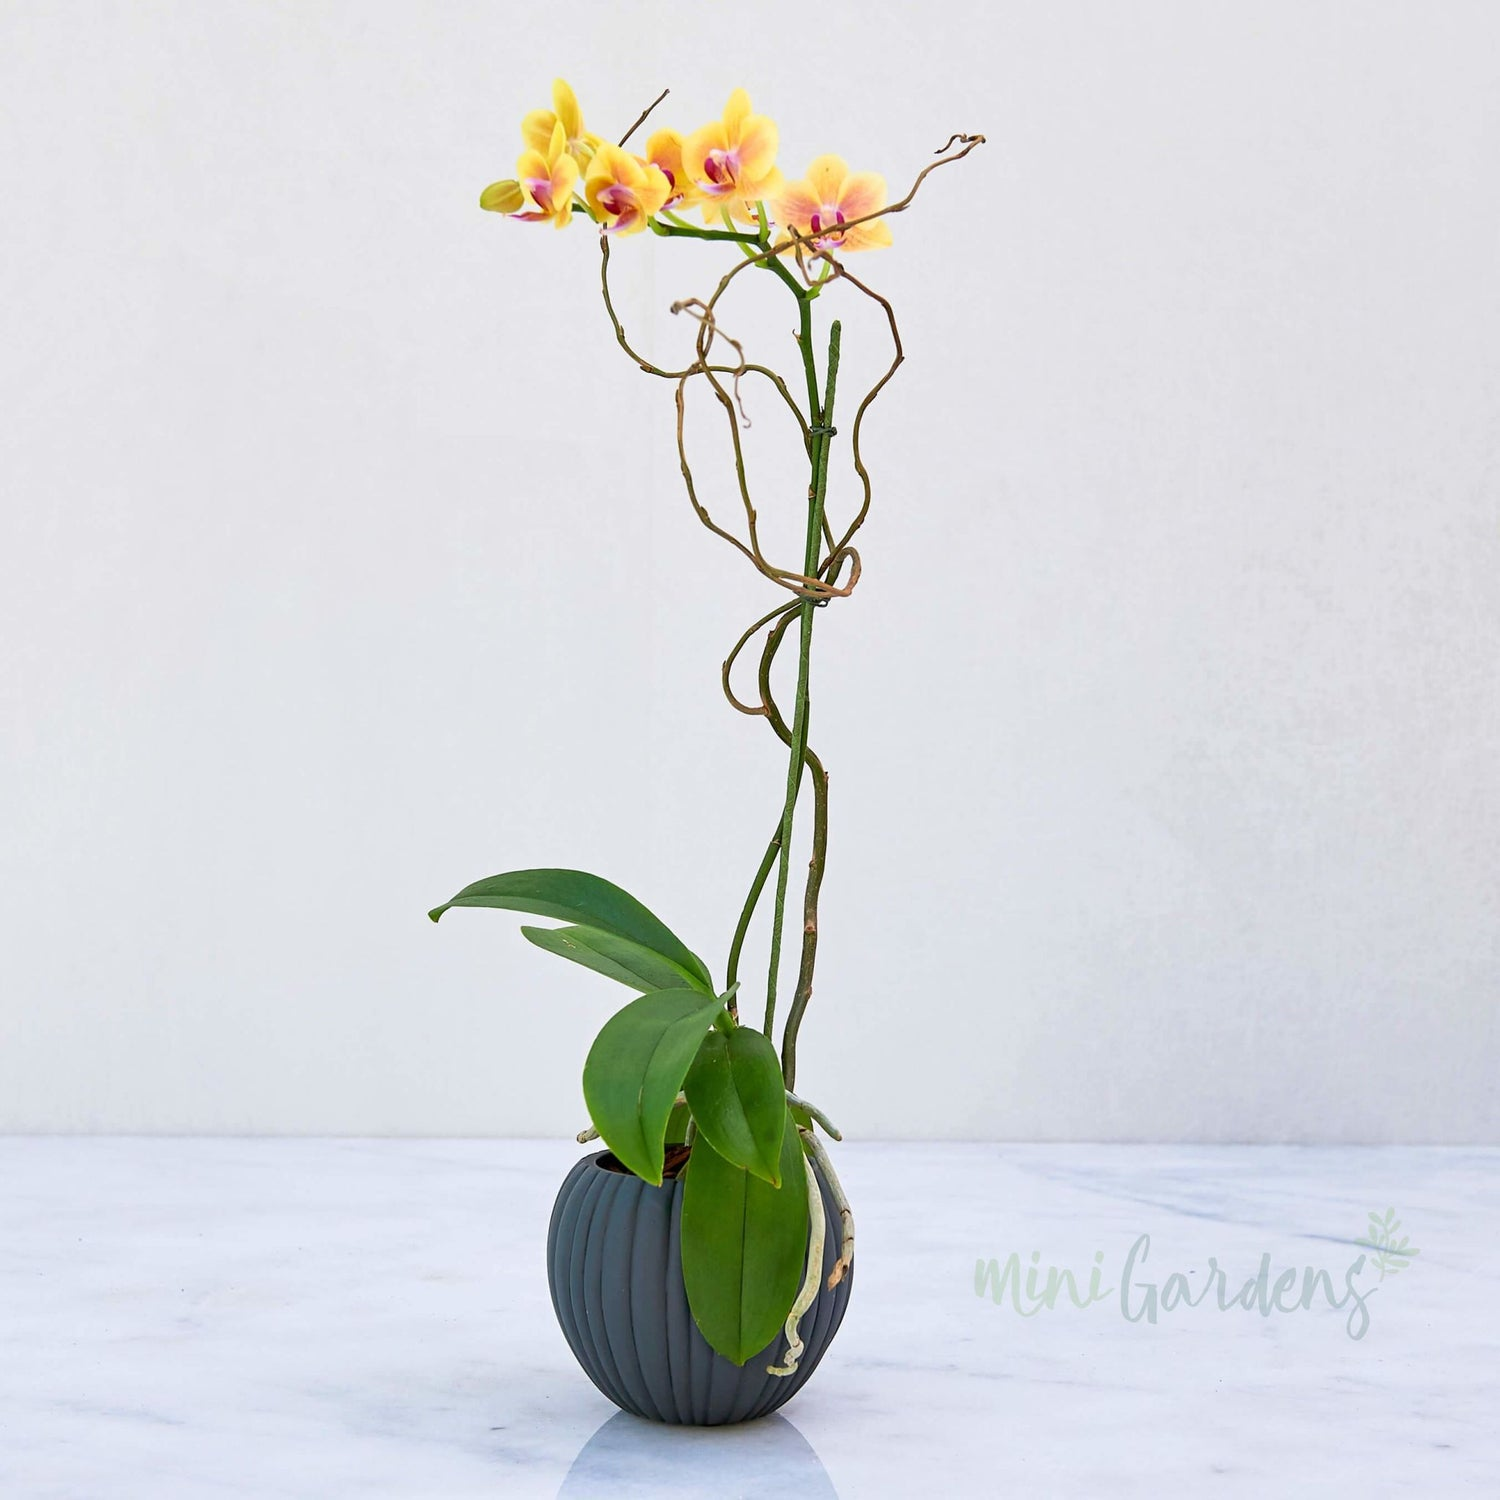 Orchid Beauty Mini Orchid (Fibre Concrete Small) Minigardens.ae Free Shipping Dubai United Arab Emirates Checkout Corporate Gifts Flowers